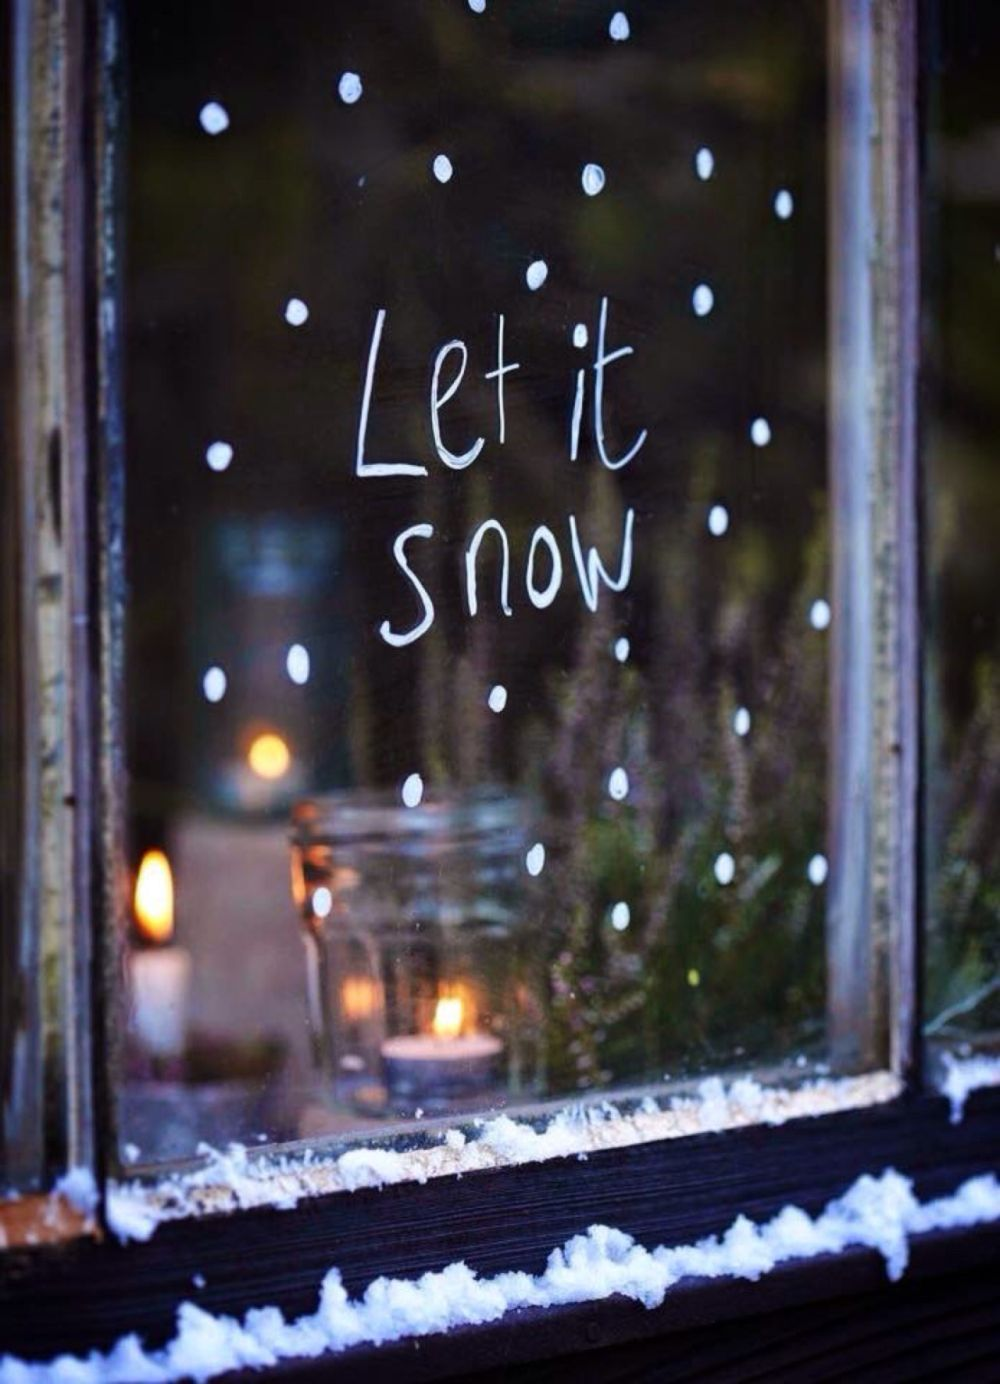 https://cdn.homedit.com/wp-content/uploads/2017/11/Christmas-window-chalk-marker-decor.jpg